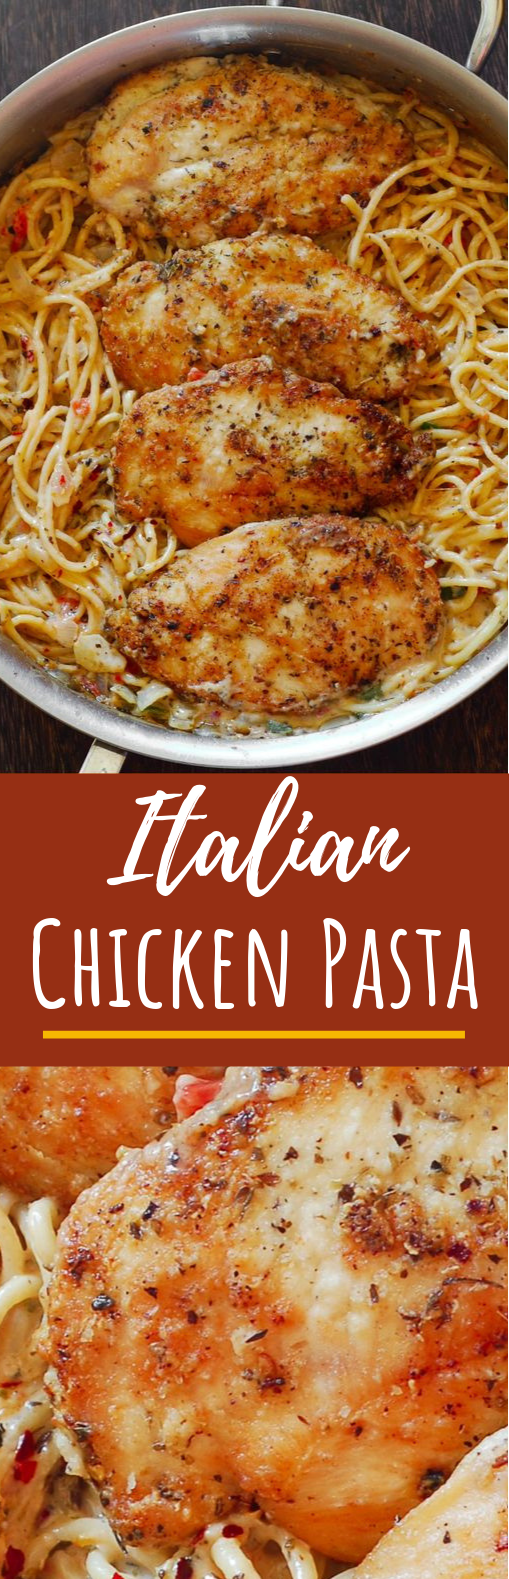 Italian Chicken Pasta #dinner #spaghetti